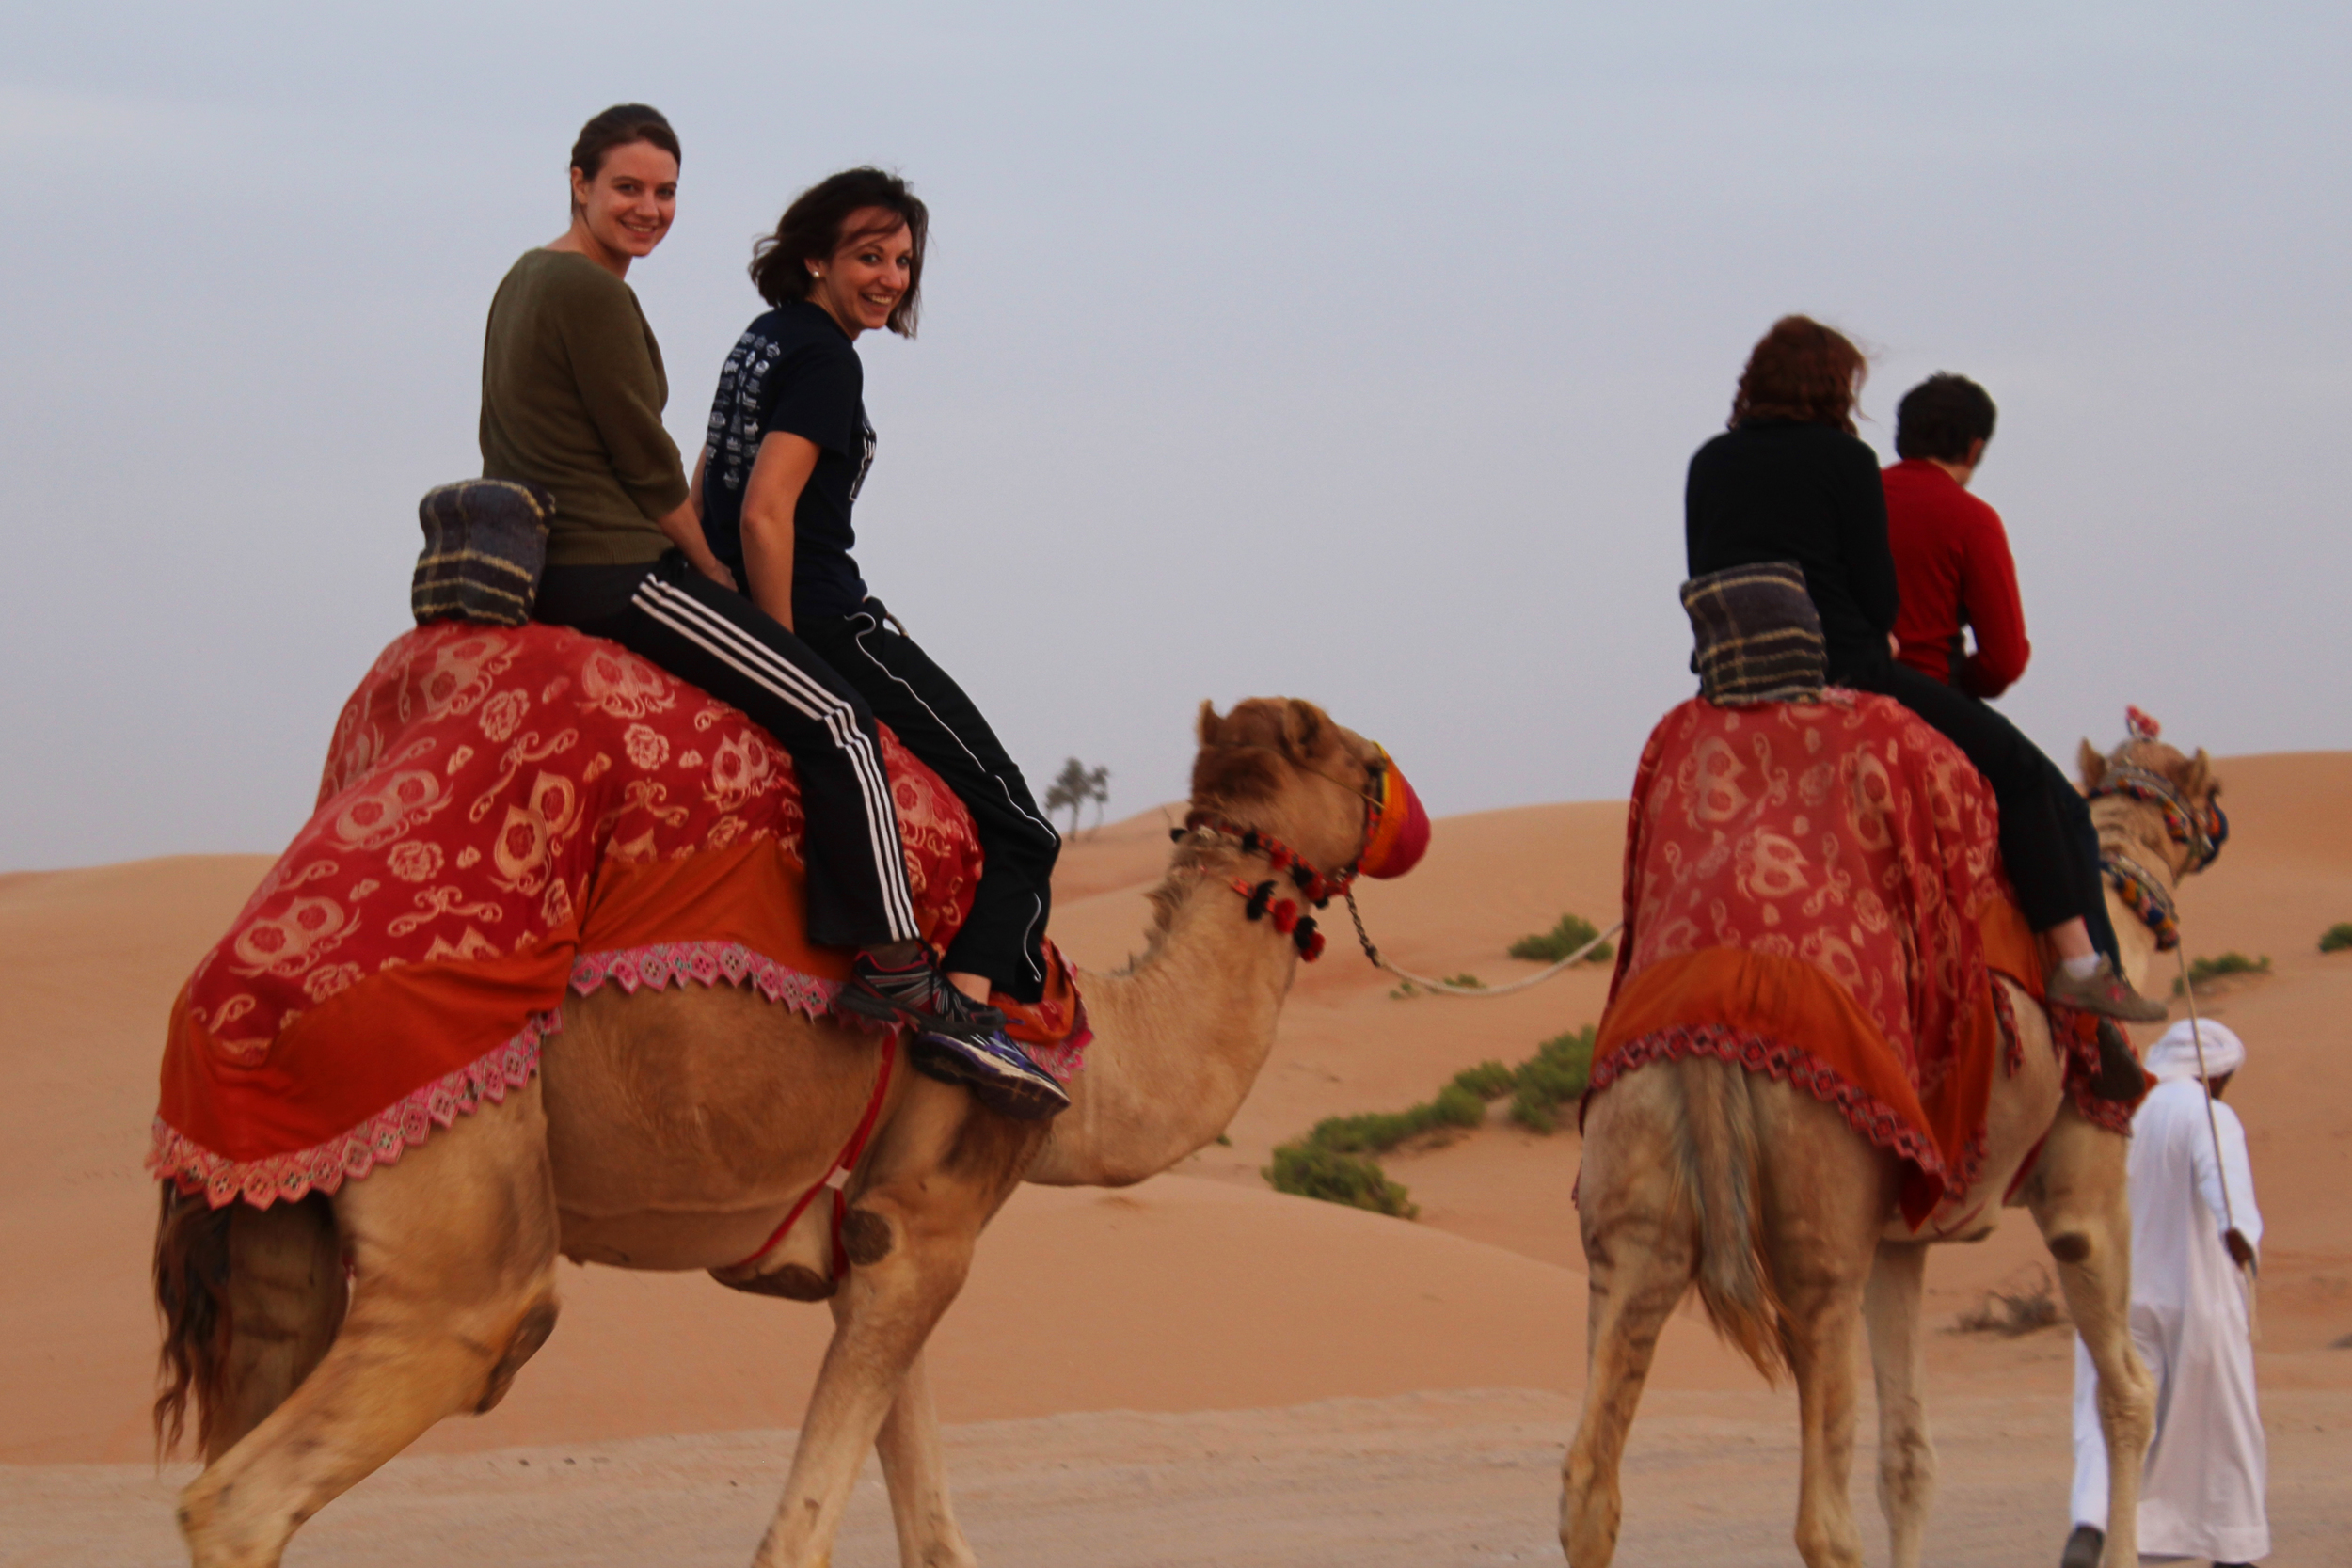 Riding a camel in the Arabian desert is about as uncomfortable as it looks. Bucket list: Check.